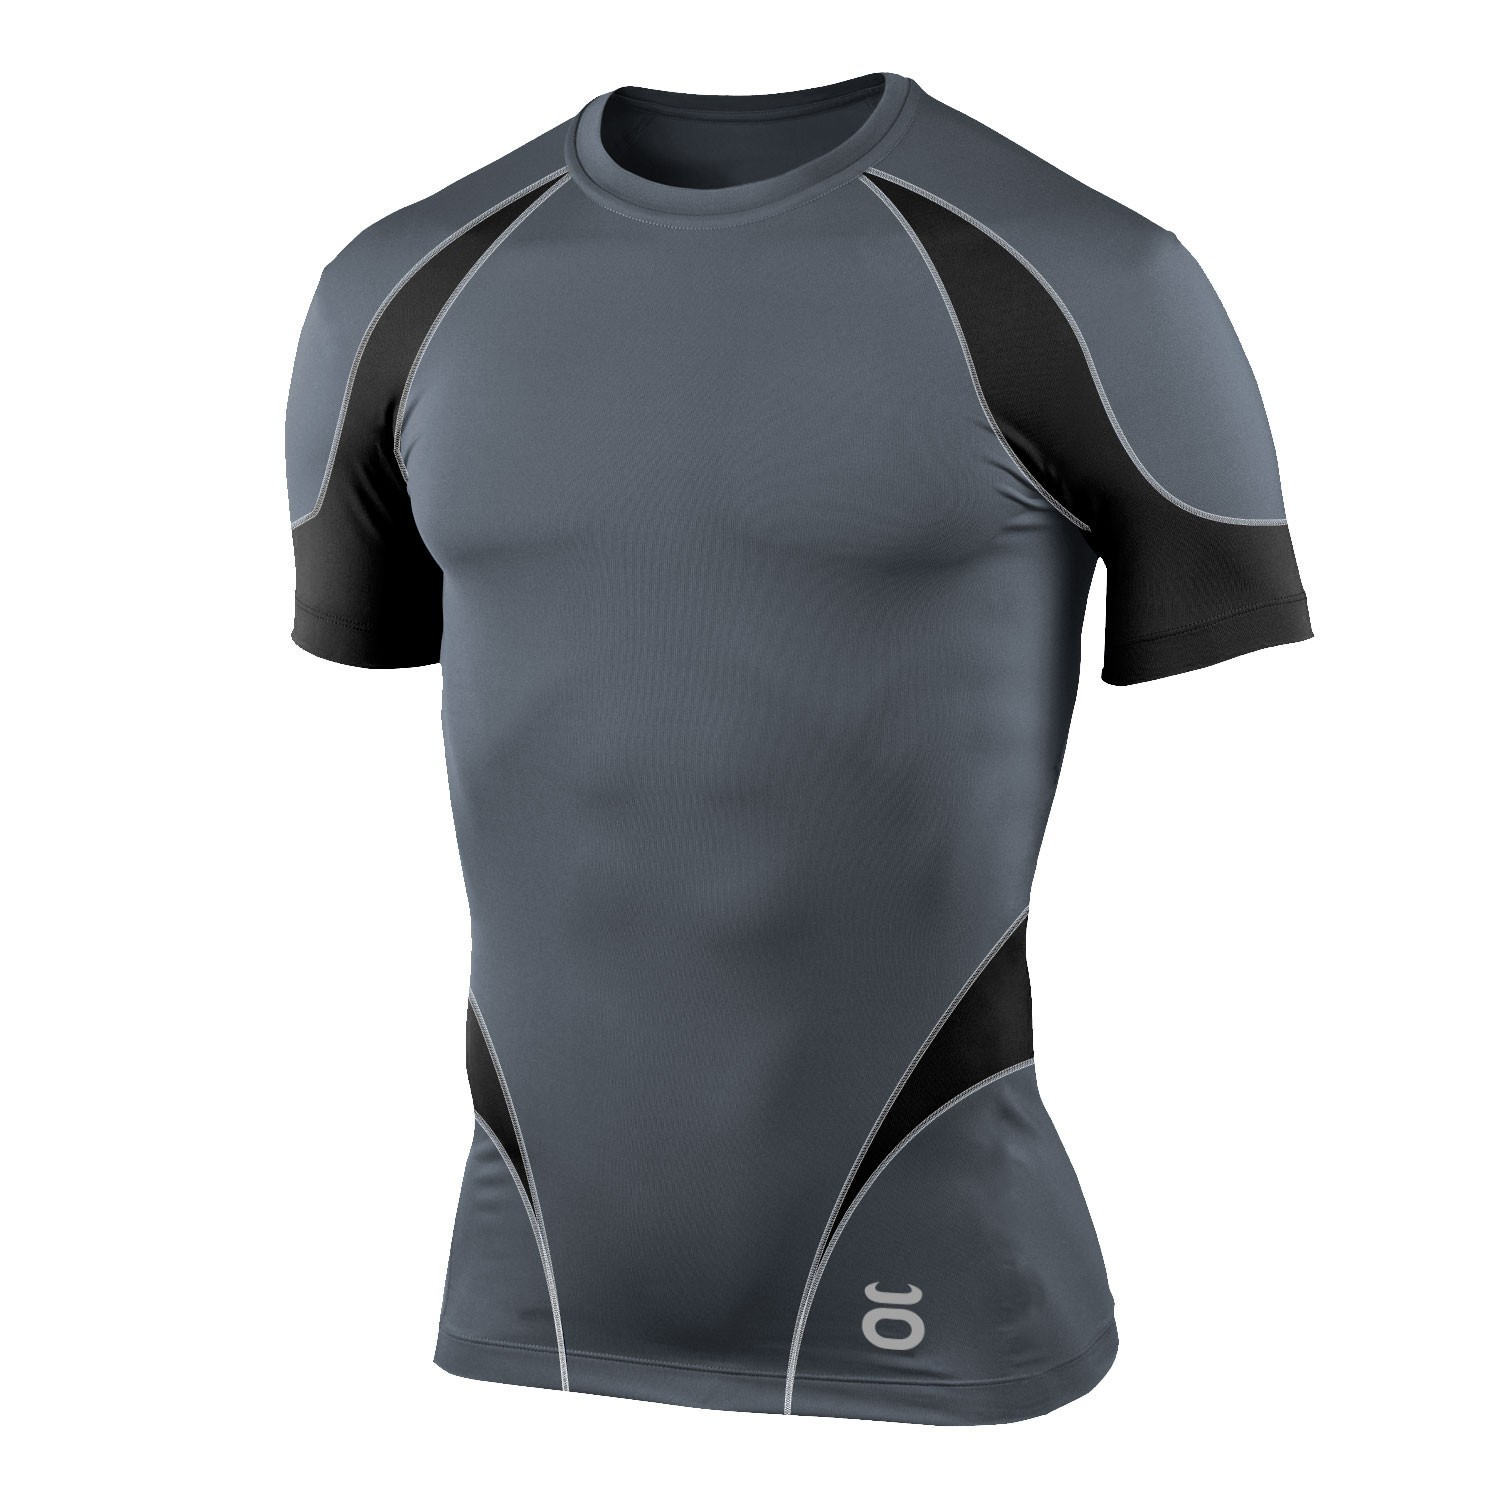 Pro Guard Compression Top - Short Sleeve (Grey/Black)